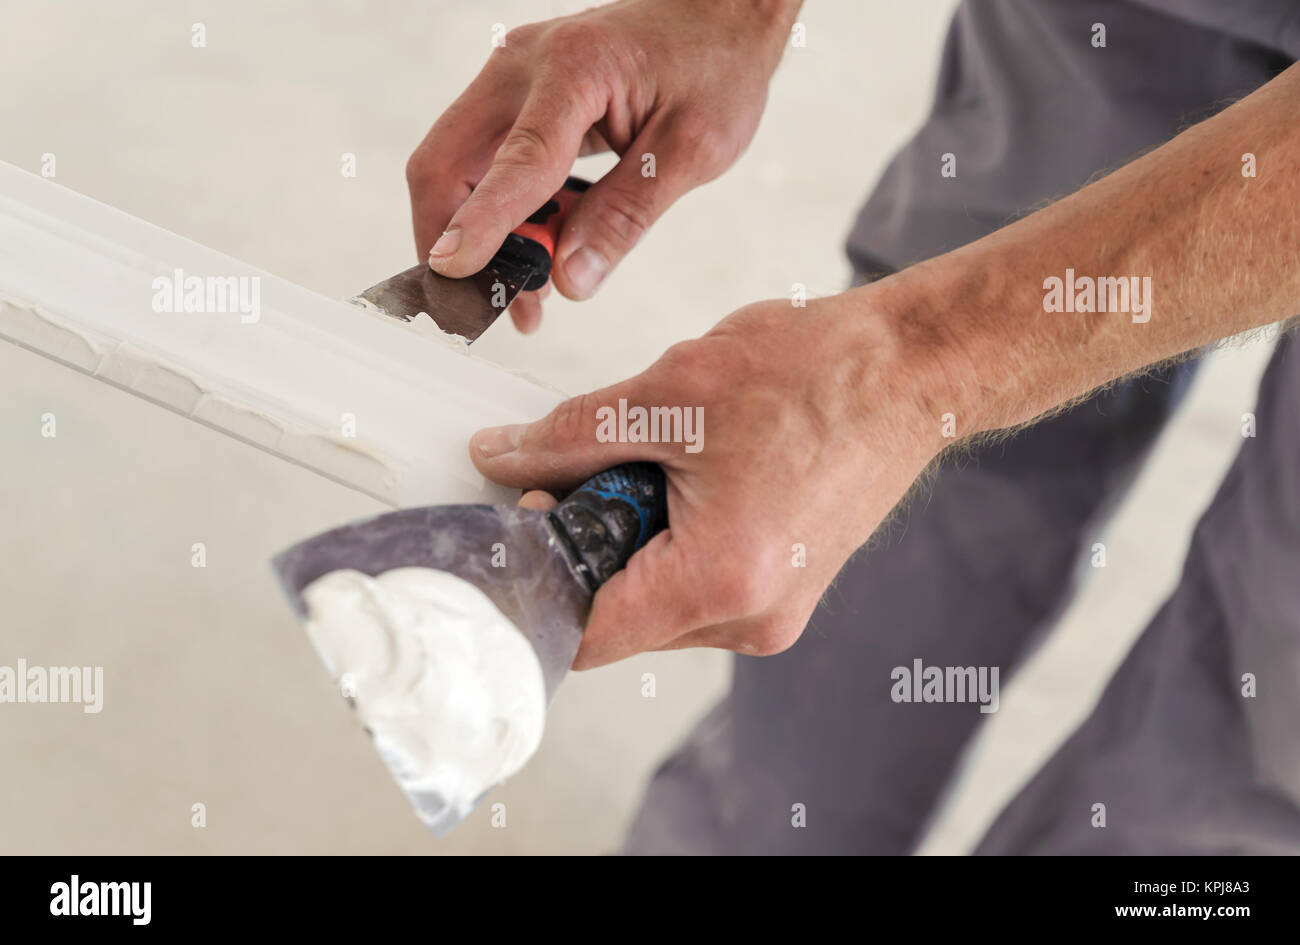 Crown Molding Stock Photos Amp Crown Molding Stock Images